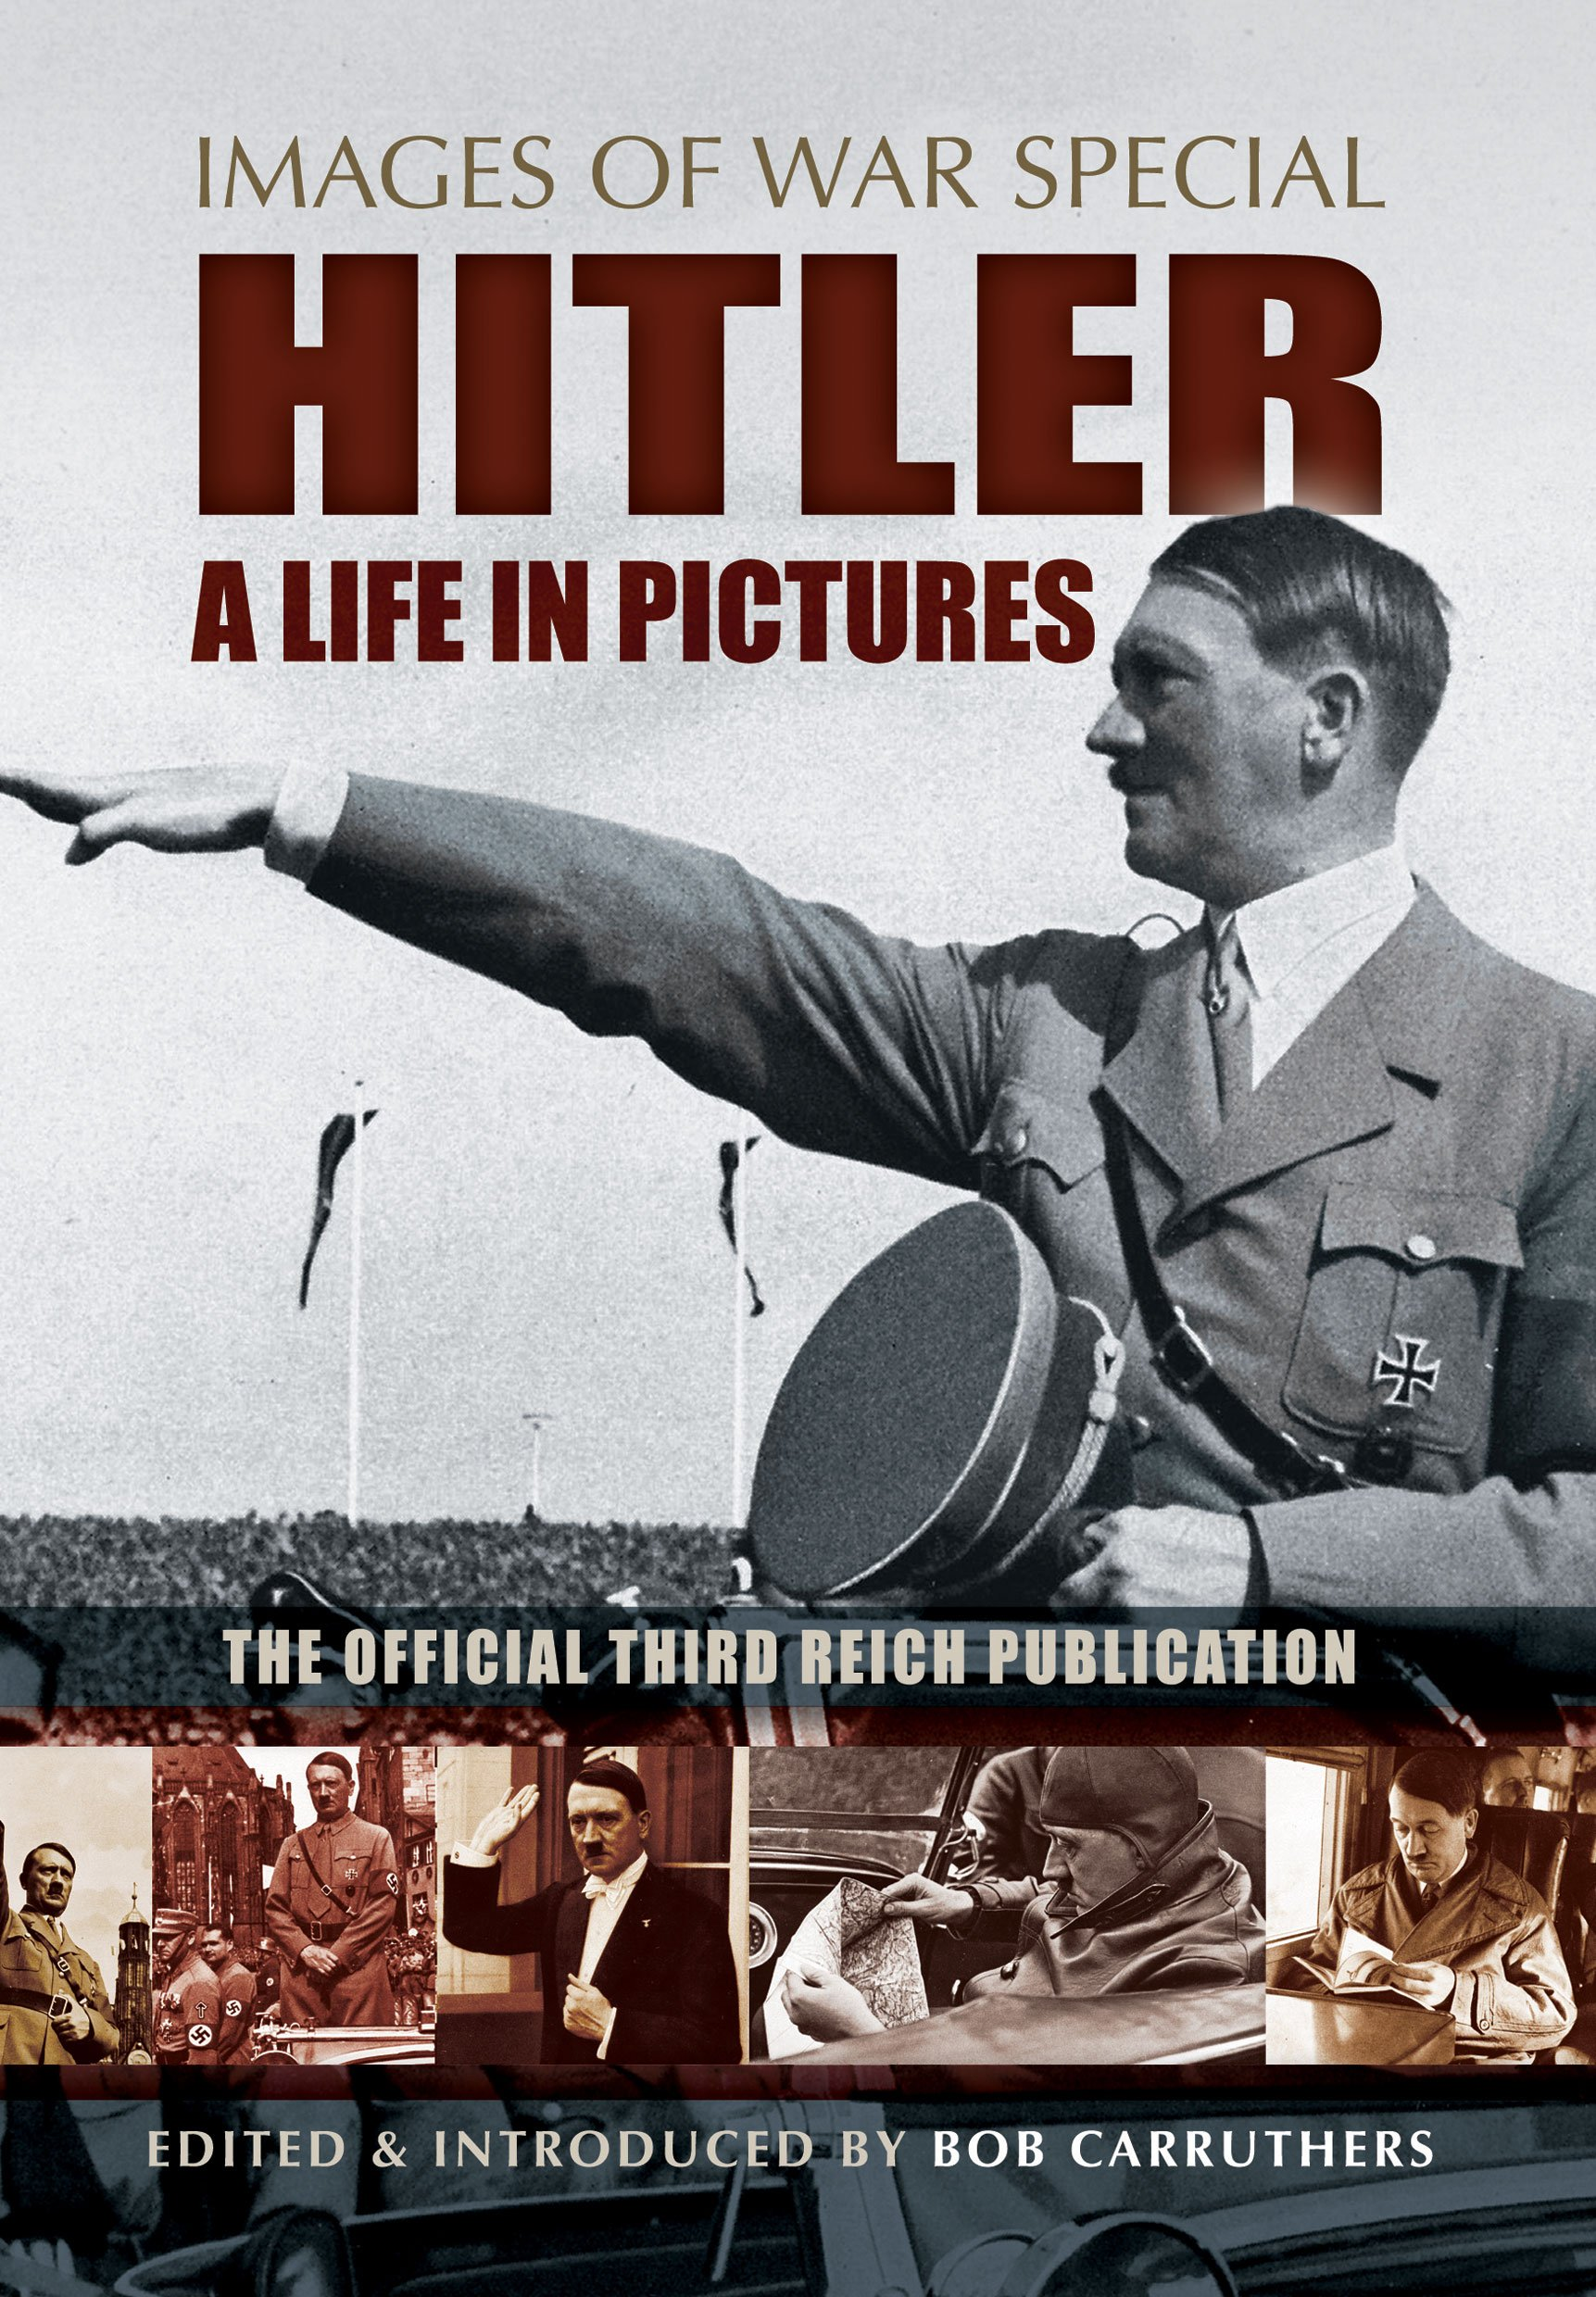 Hitler - A Life in Pictures (Images of War Special) free download